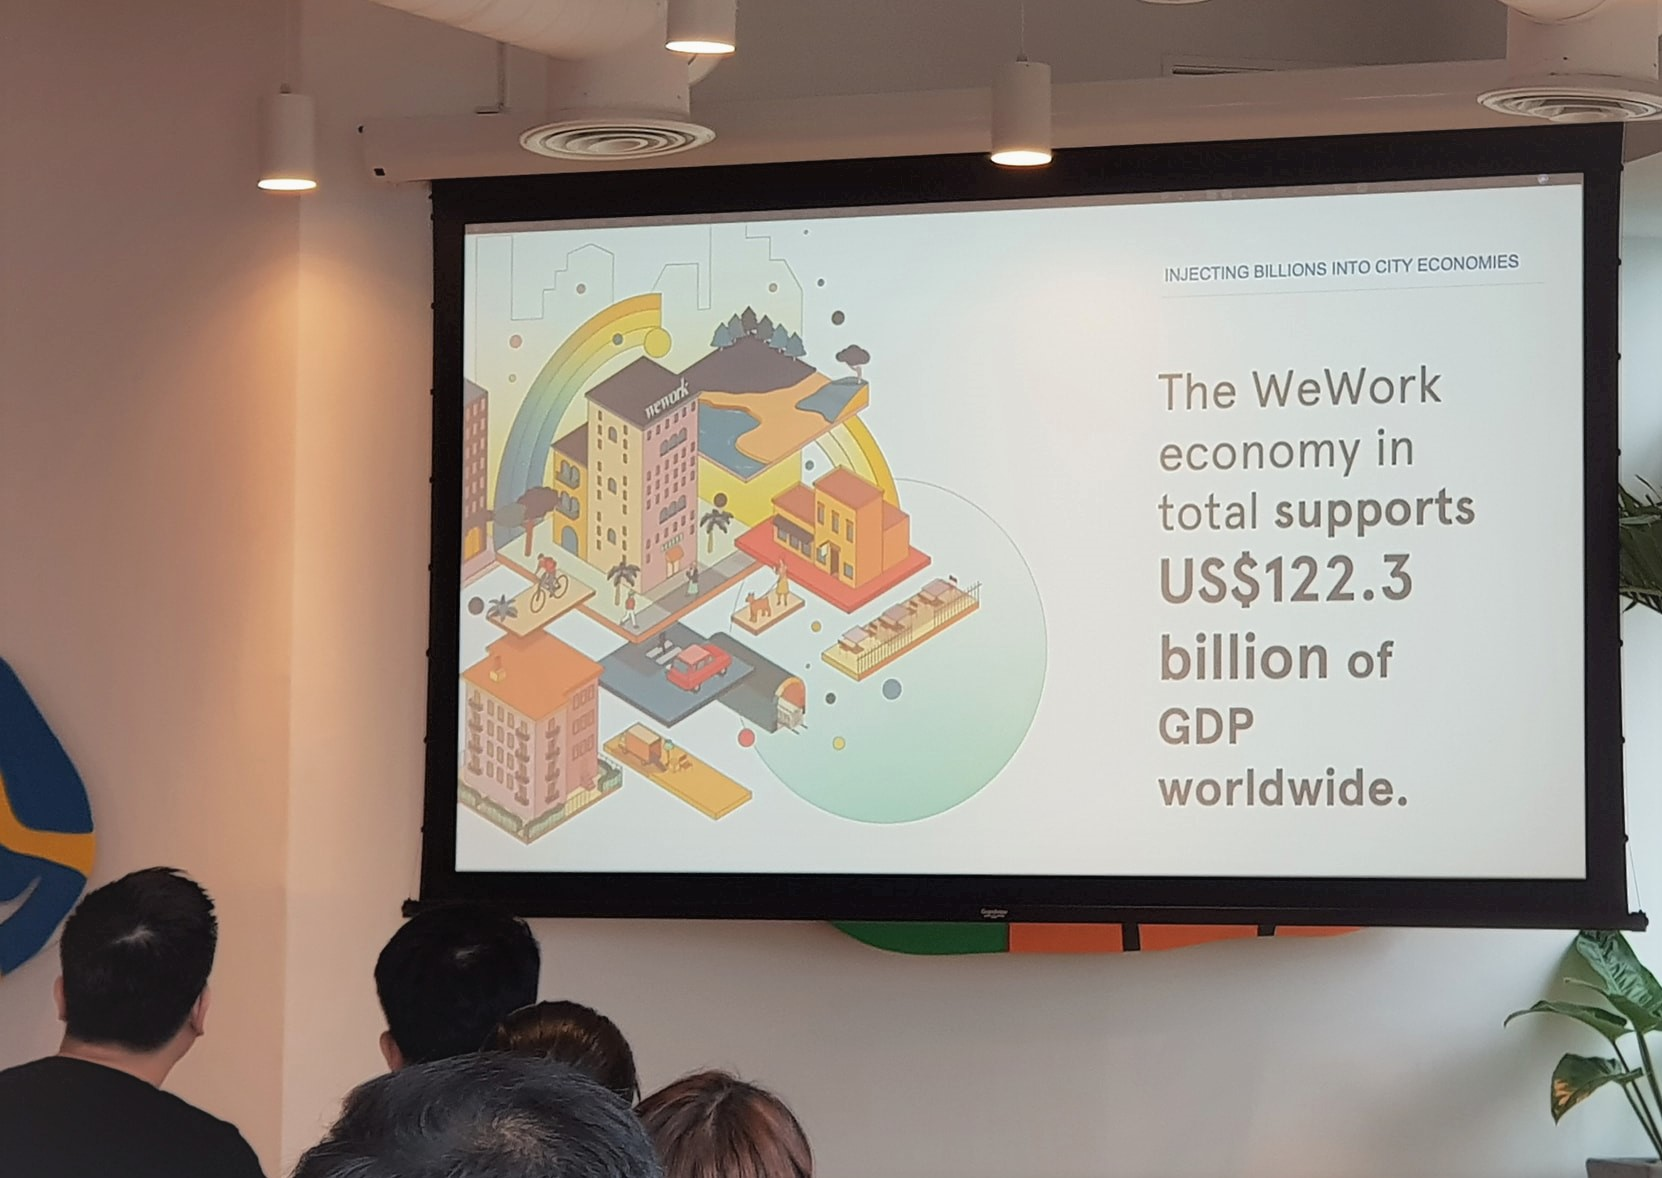 wework co-working space GDP